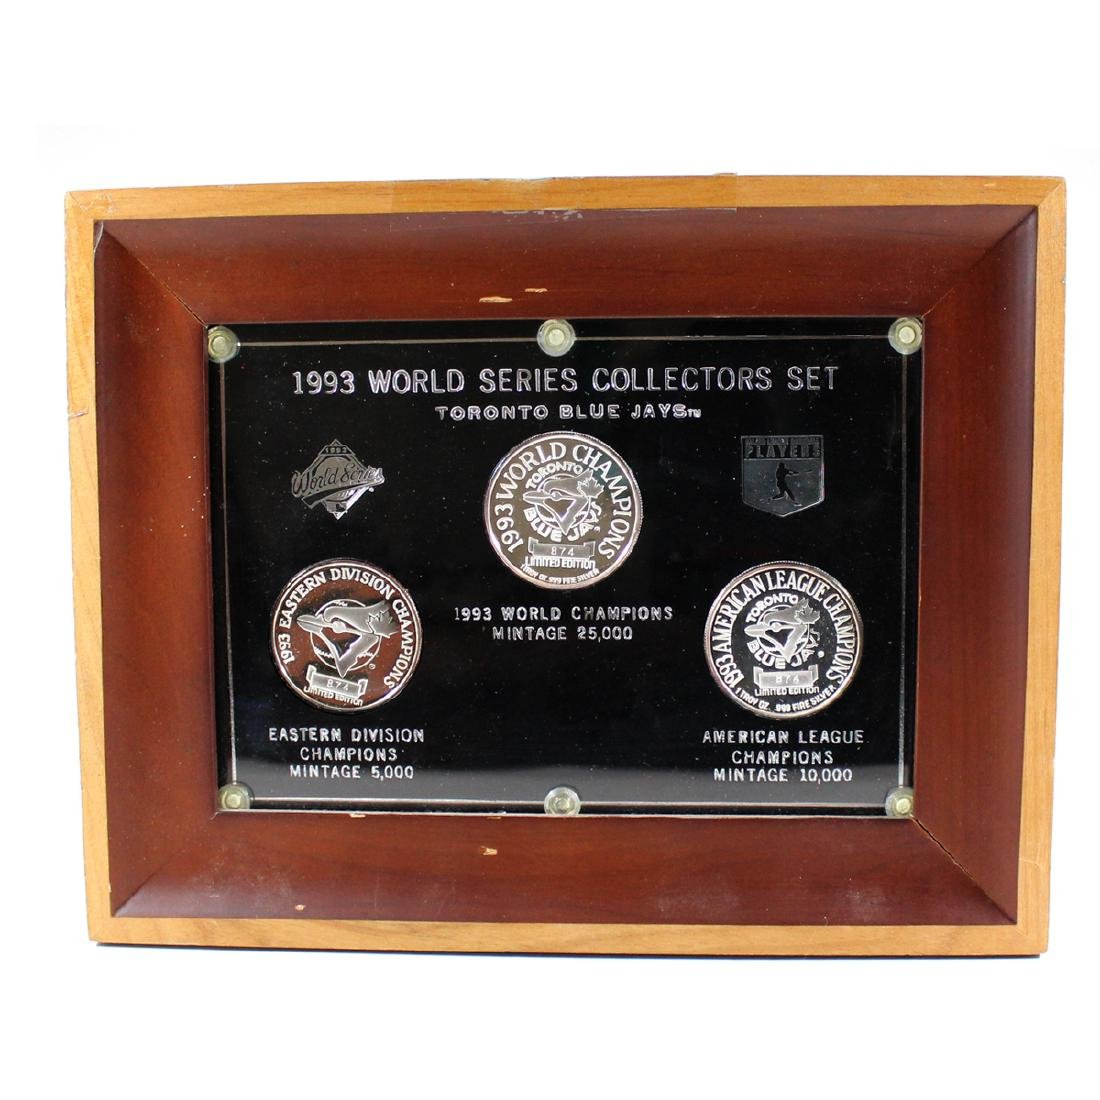 1993 Toronto Blue Jays World Series Limited Edition